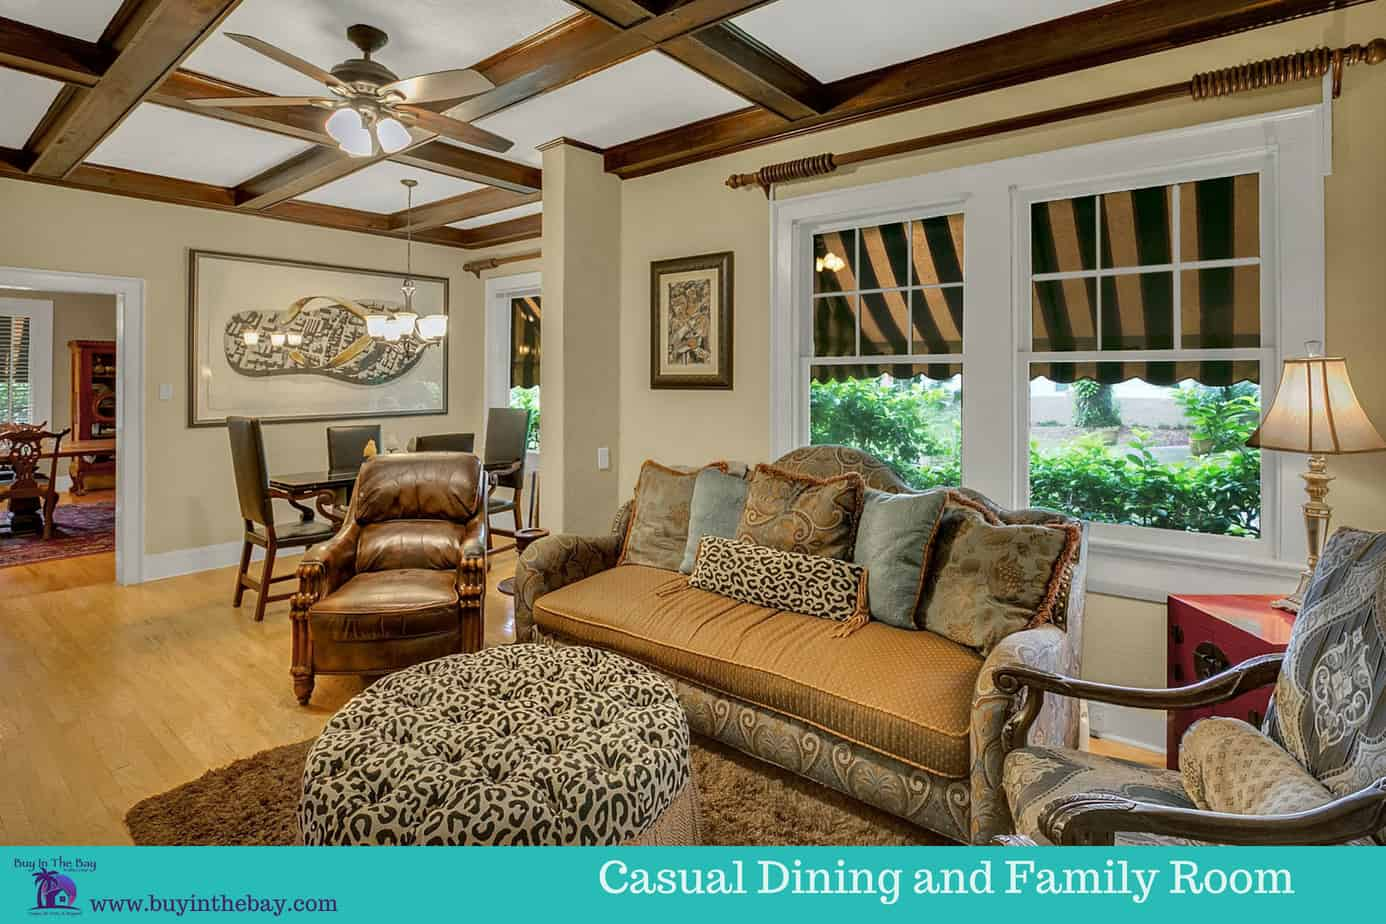 Picture of the cozy family room with couch, two chairs, wood floors, rug, beamed ceilings, for the home for sale at 4024 W Bay to Bay Boulevard Tampa FL 33629. A perfect Example of a Historic Homes in Florida and a Tampa Bay Luxury Homes For sale.